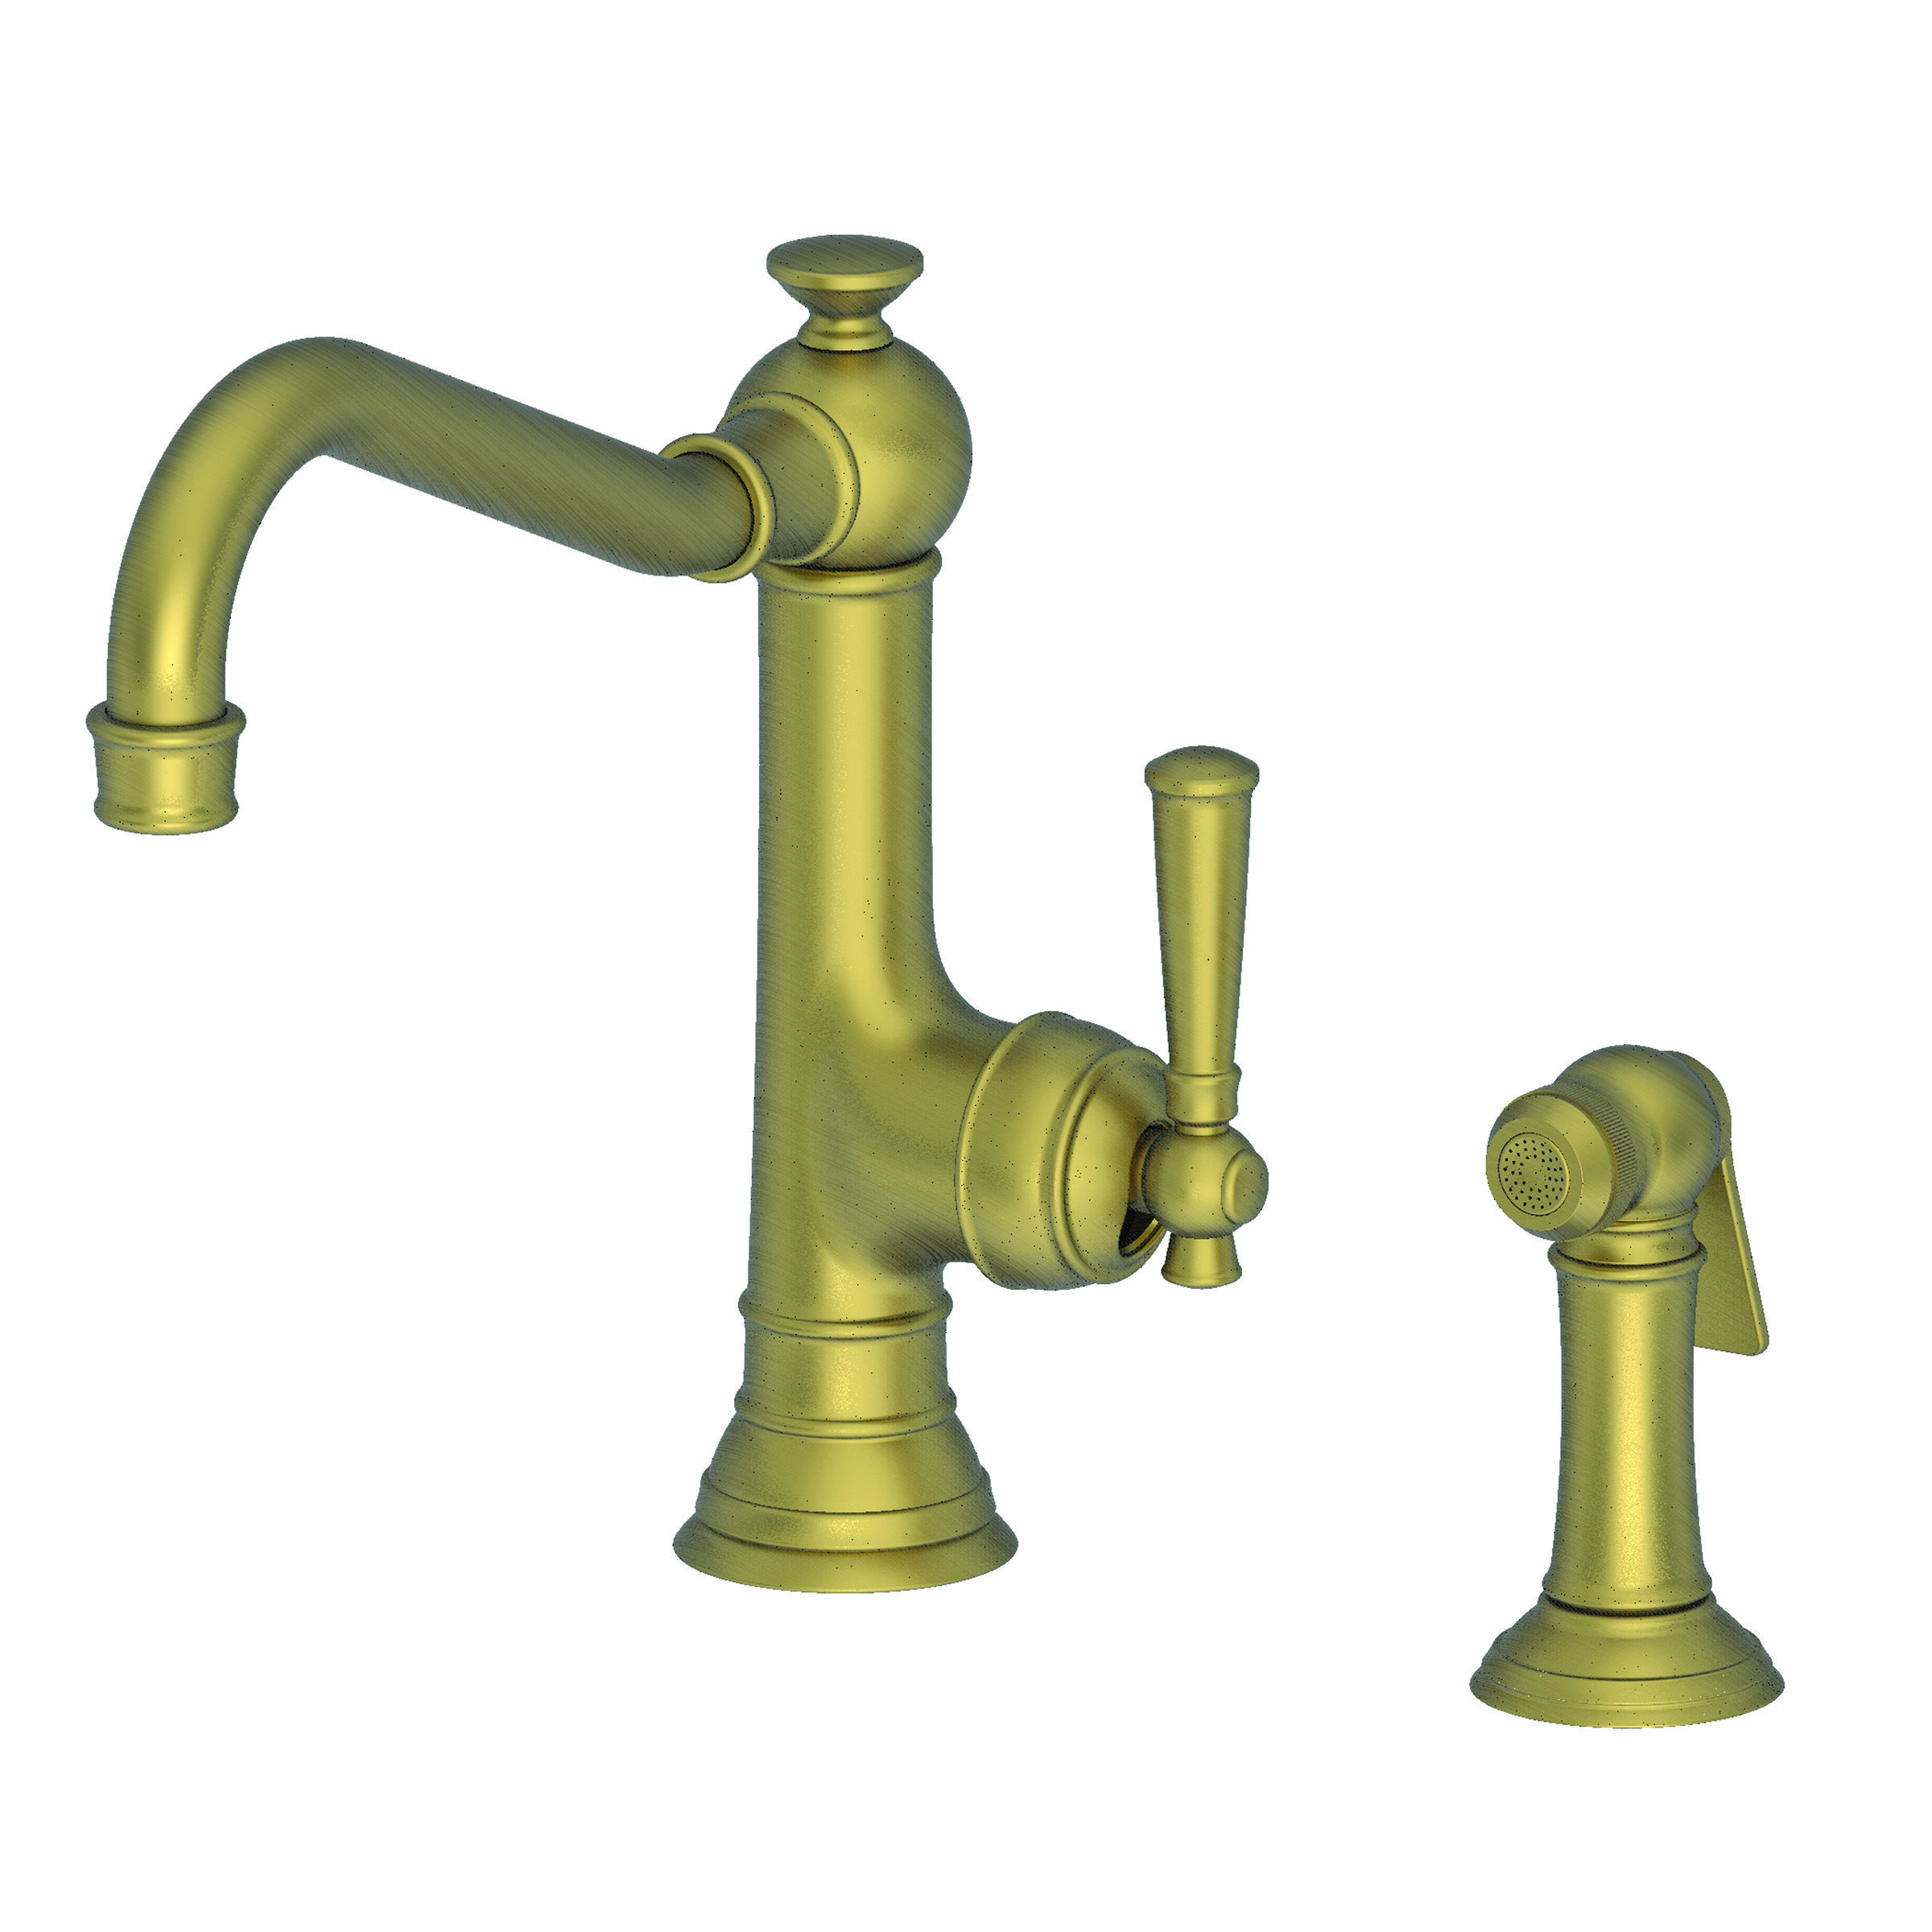 Awesome Newport Brass 2470 5313/06 Antique Brass Jacobean Single Handle Kitchen  Faucet With Side Spray   Faucet.com